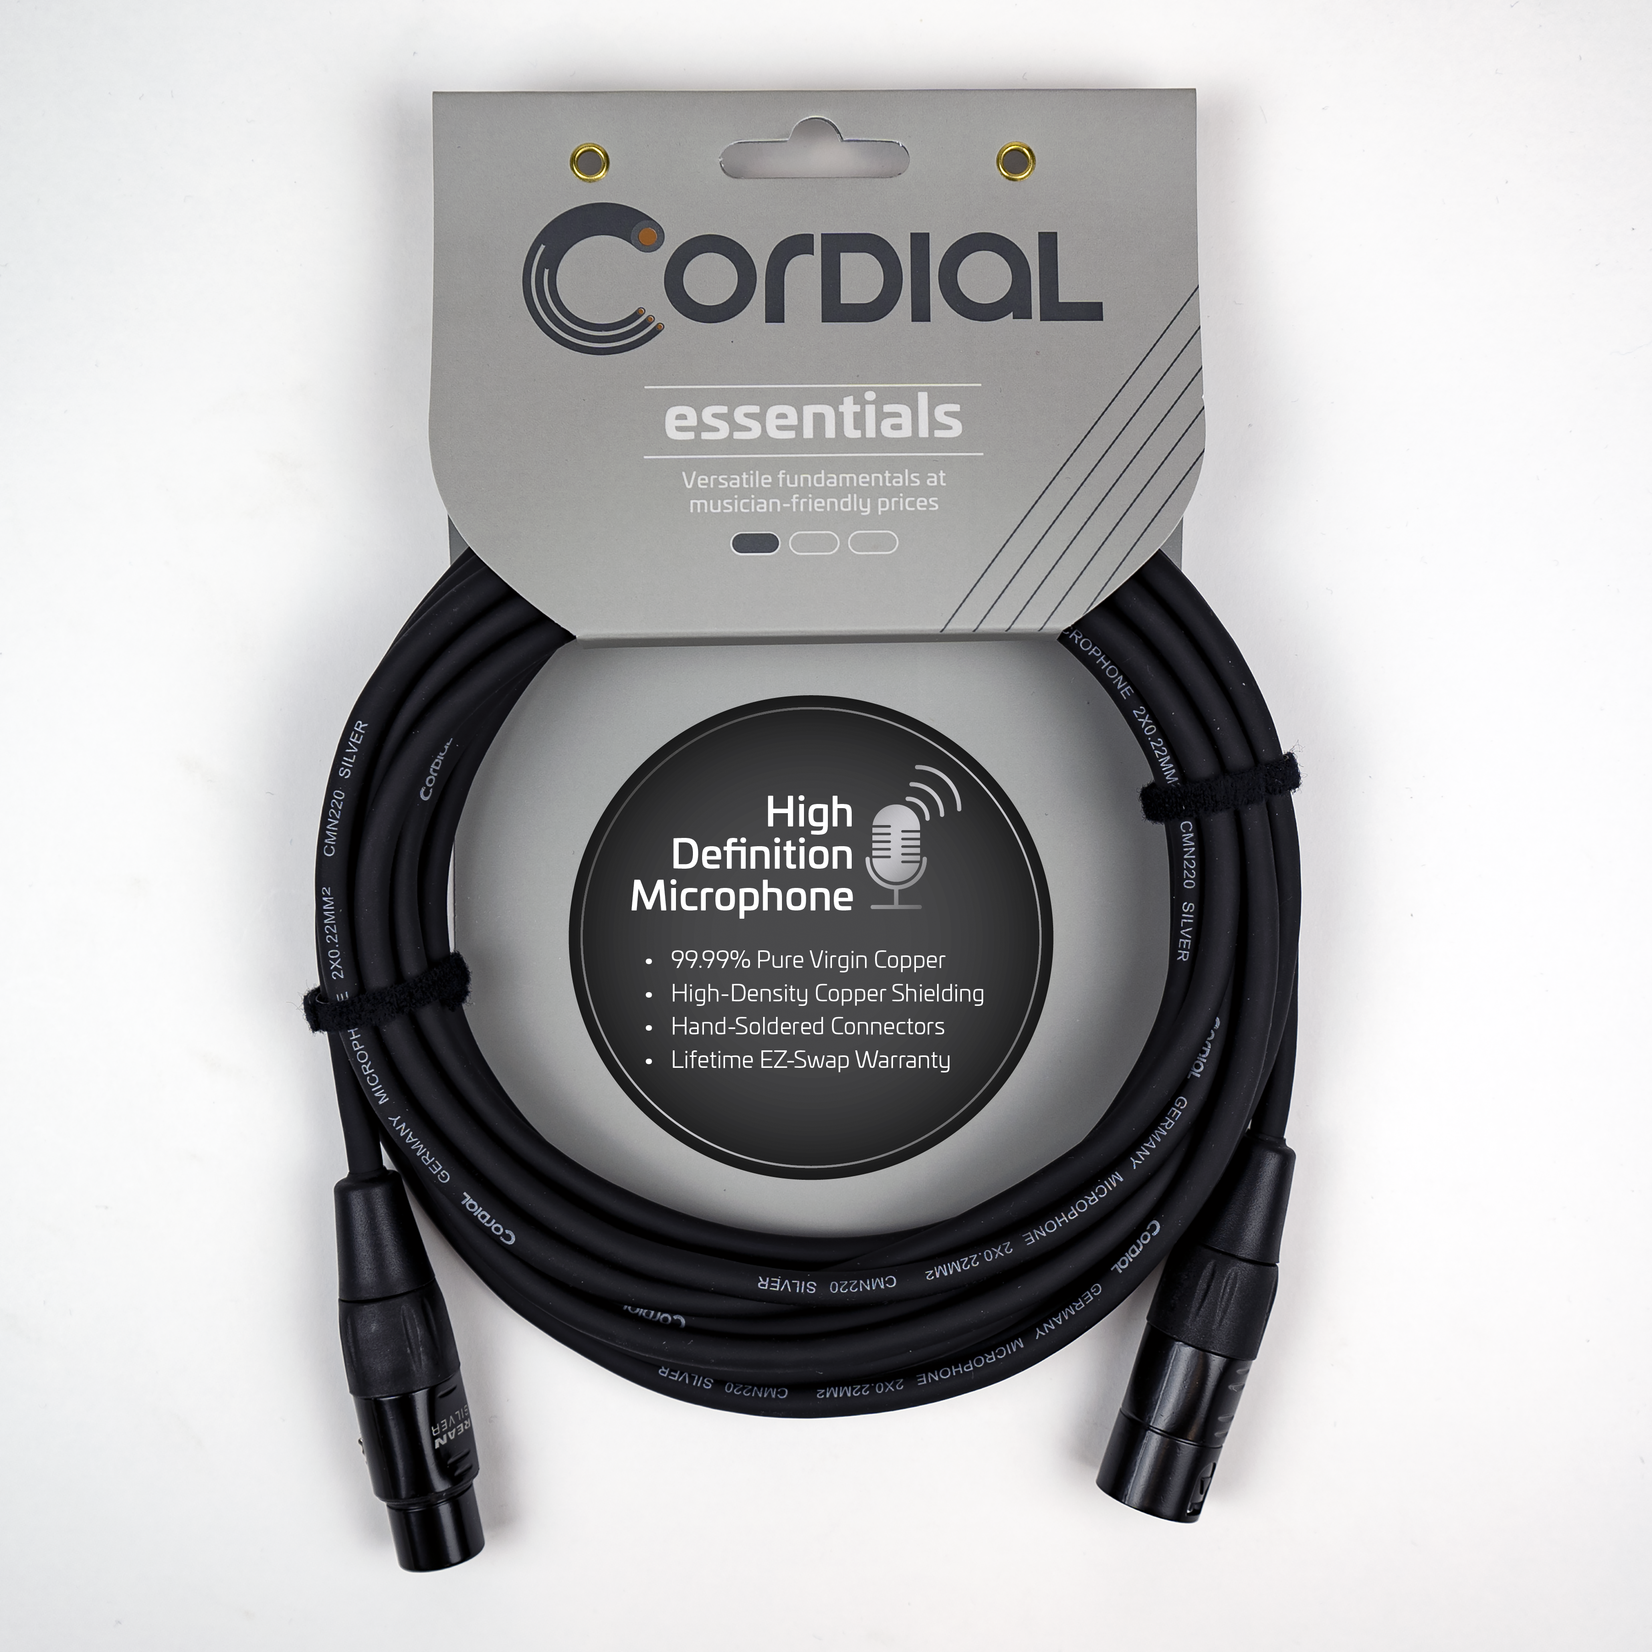 Cordial Cables Cordial Microphone Cable - XLRM to XLRF - 10m / 33 Ft, Essential Series